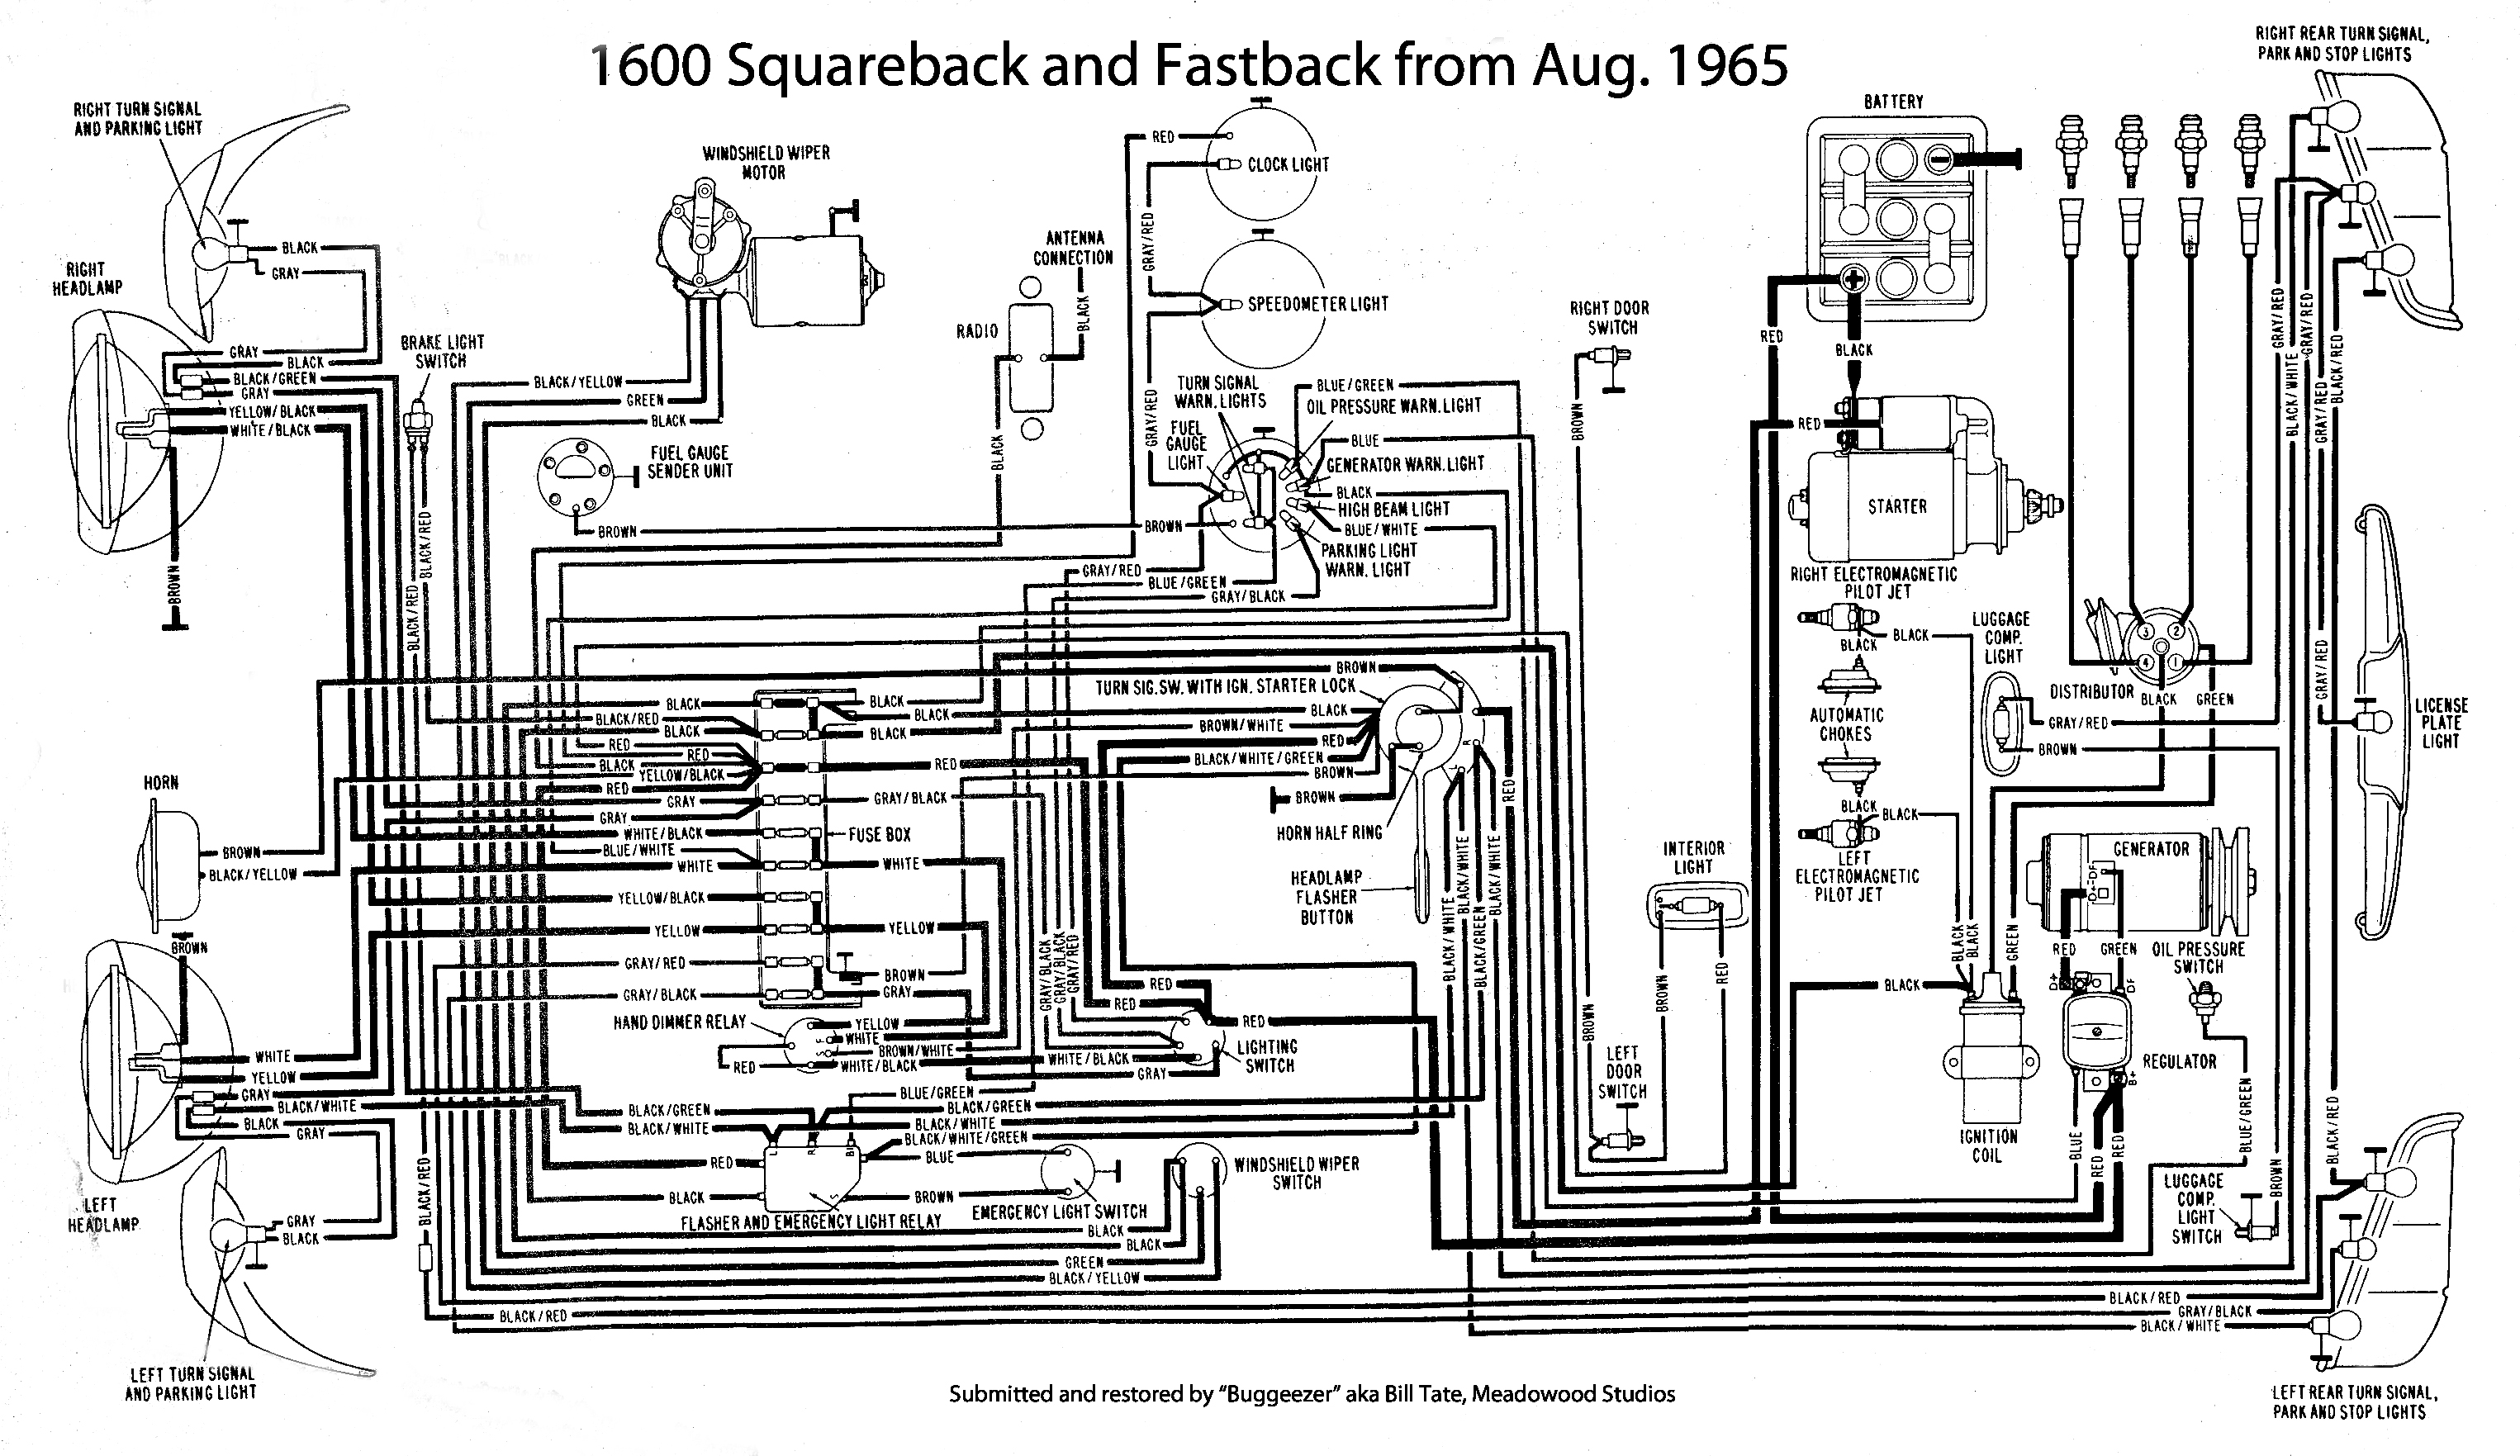 1973 Vw Beetle Engine Diagram Just Another Wiring Blog 1972 Bus Volkswagen Type 3 Schema Diagrams Rh 66 Justanotherbeautyblog De Super